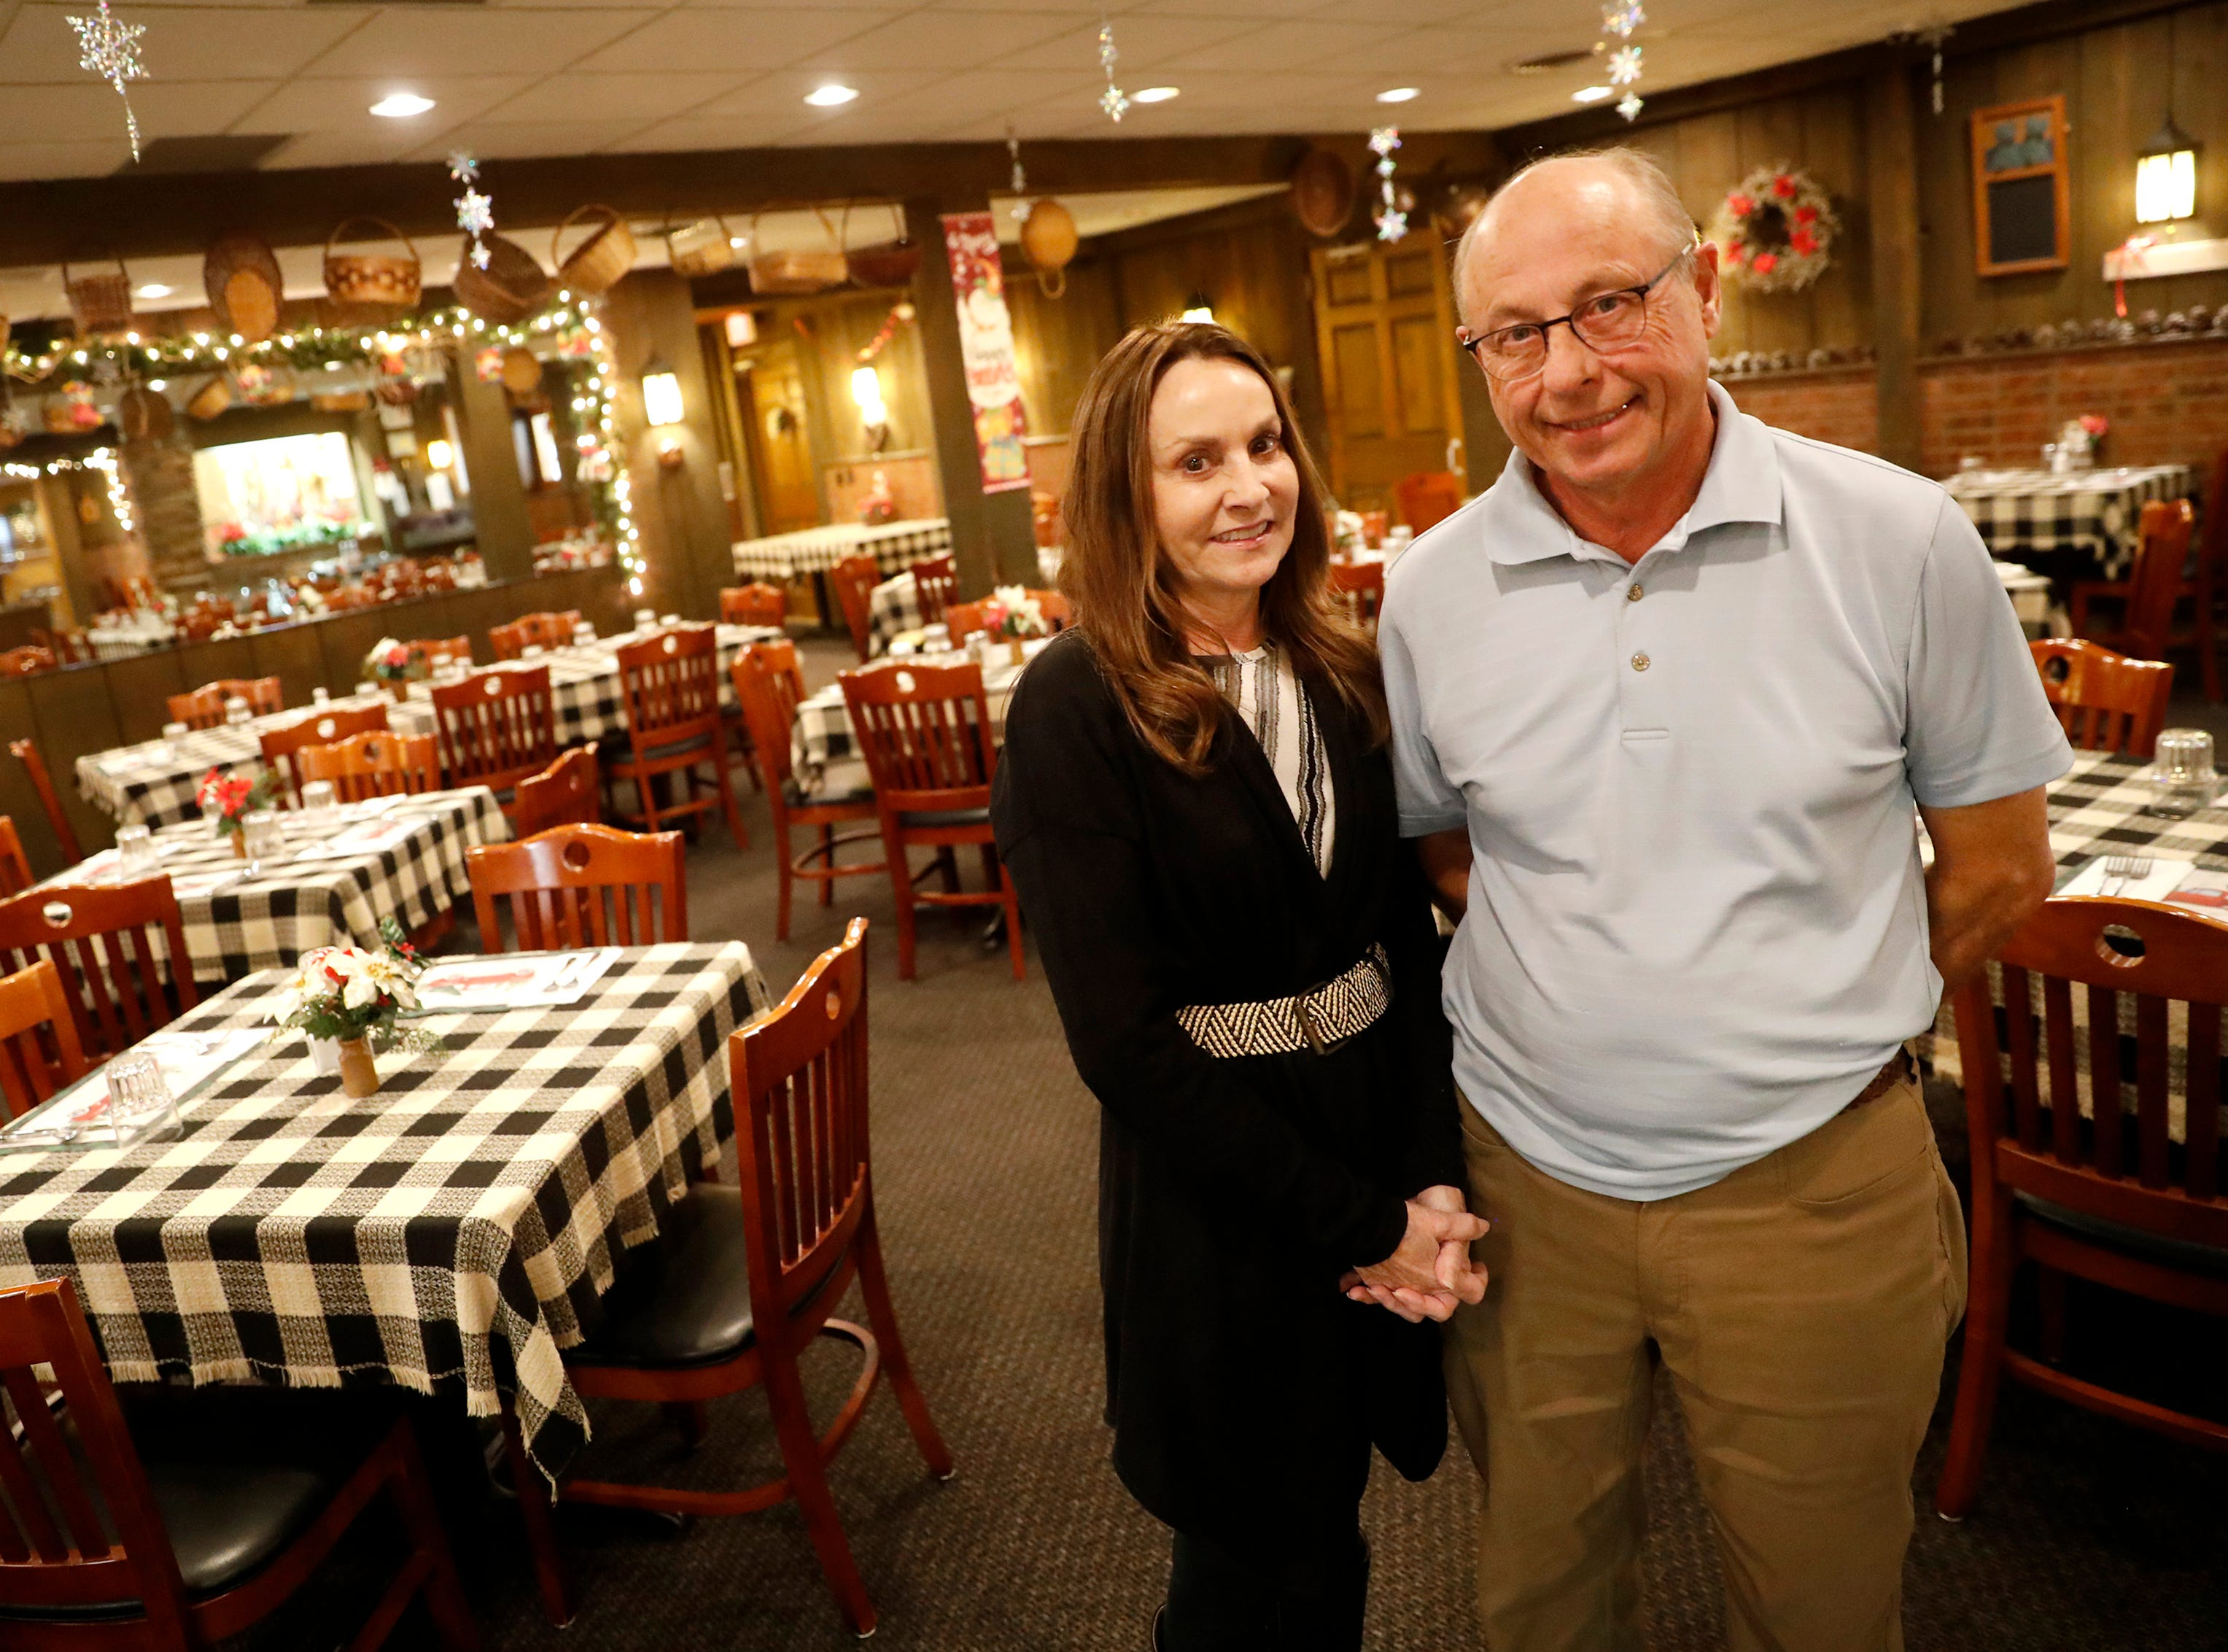 Barb and John Roepke, owners of Roepke's Village Inn, stand for a portrait in the dining room of their supper club Wednesday, Dec. 12, 2018, in Charlesburg, Wis.Danny Damiani/USA TODAY NETWORK-Wisconsin